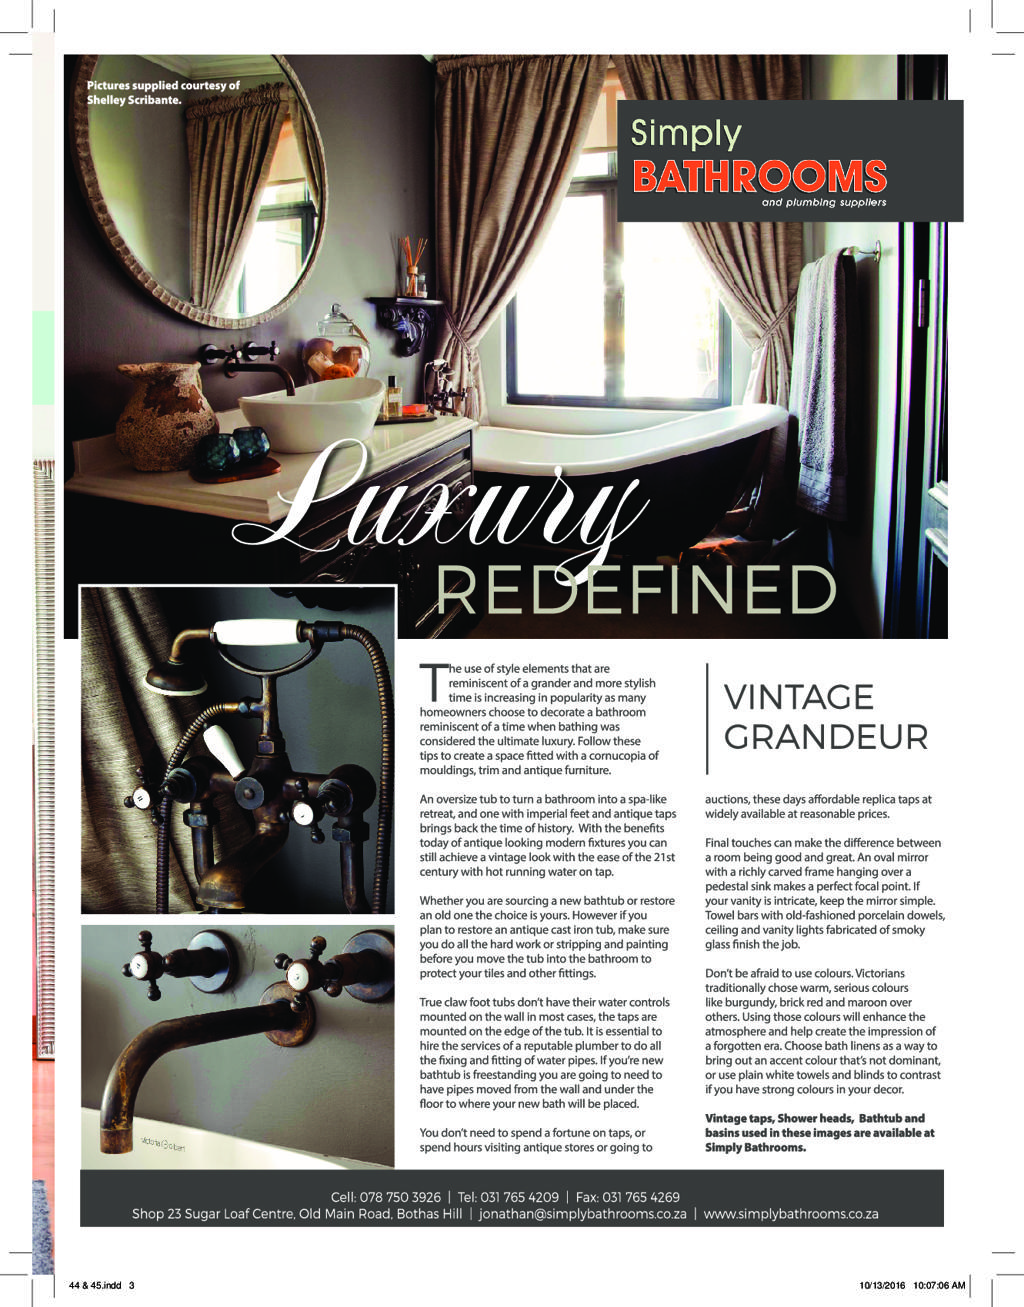 durban-get-it-magazine-november-2016-epapers-page-47